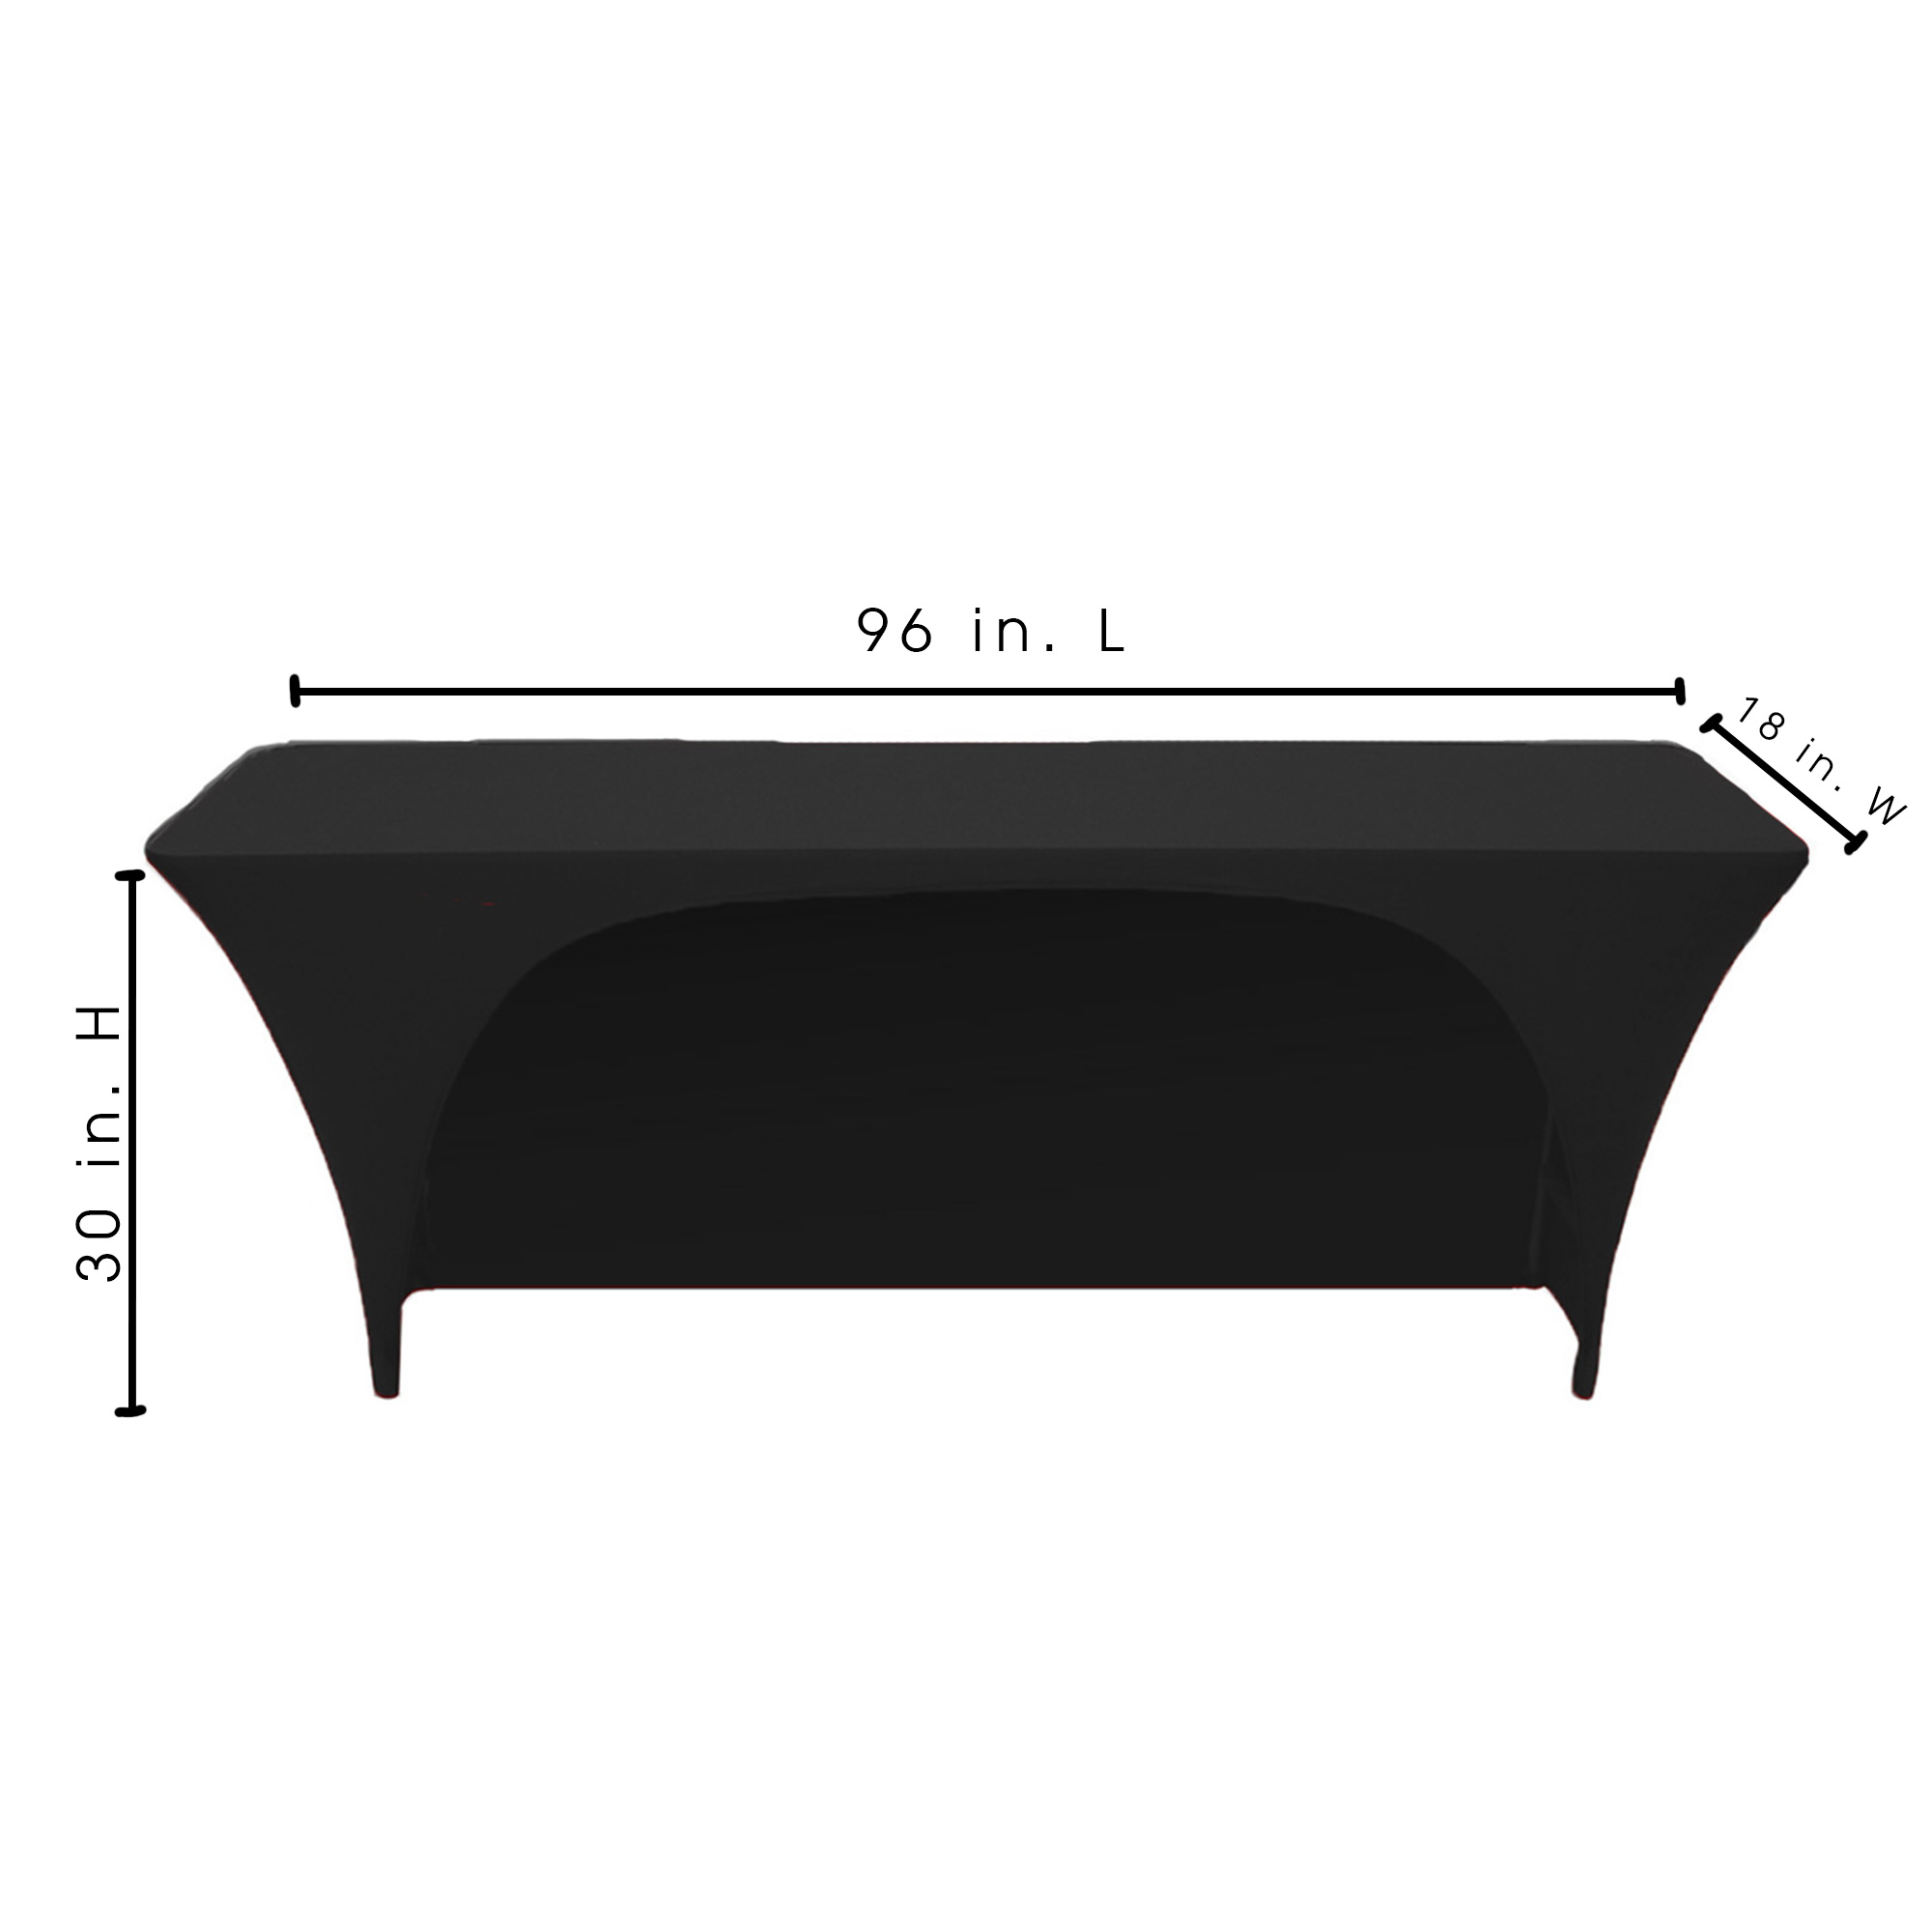 stretch-spandex-8ft-18-inches-open-back-rectangular-table-covers-black-dimensions-2.jpg